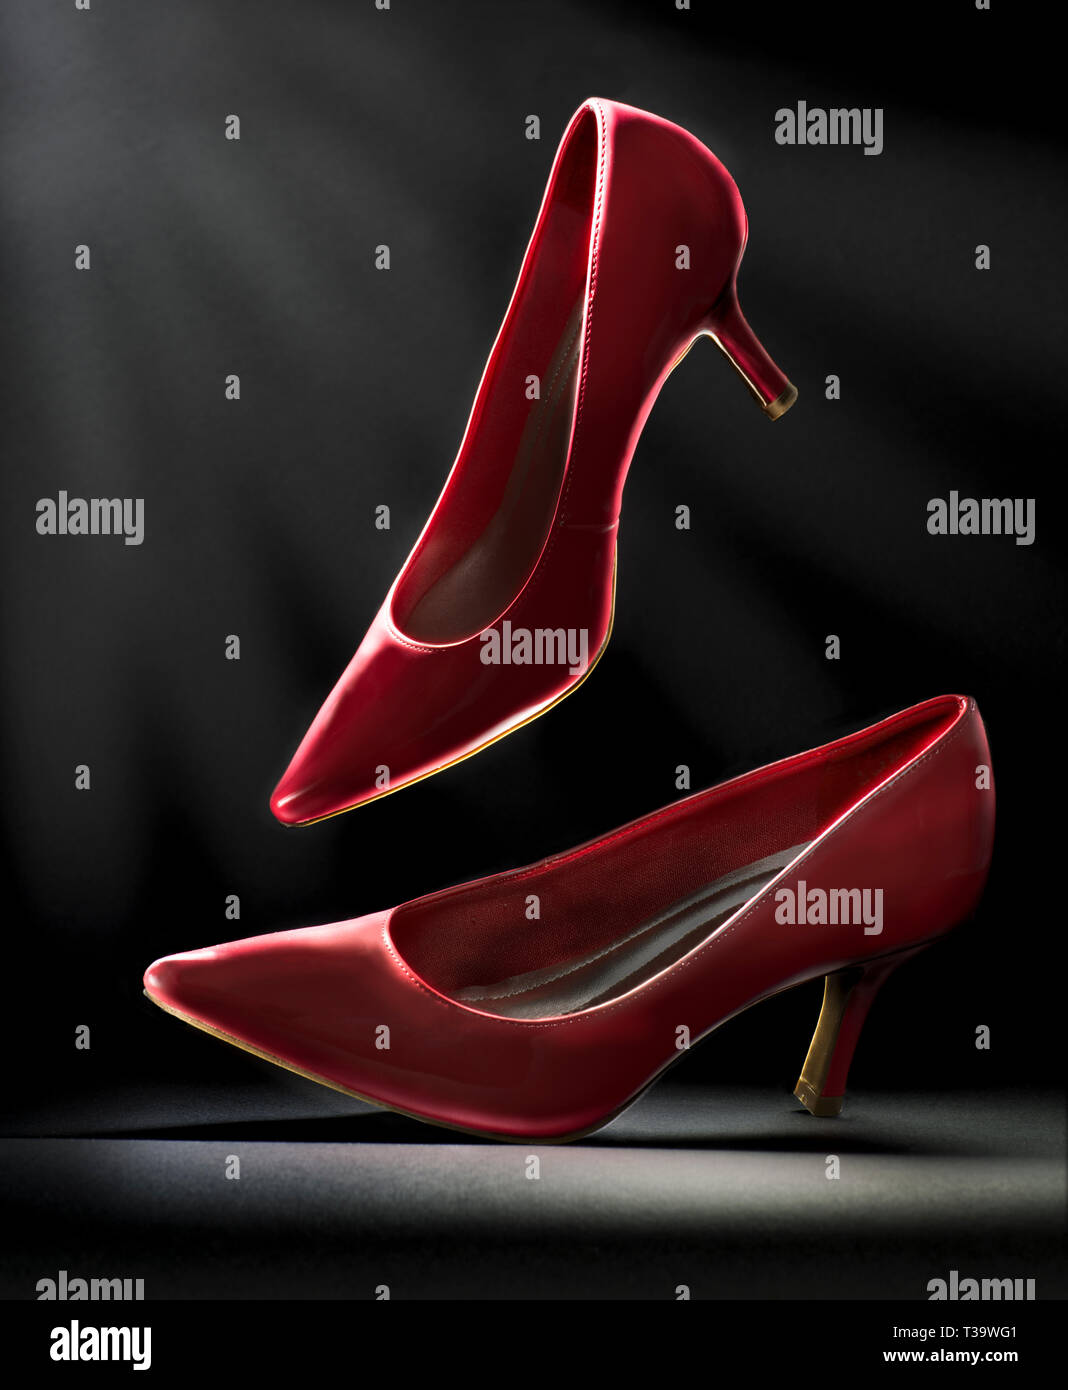 Kick Your Heels Stockfotos & Kick Your Heels Bilder Alamy